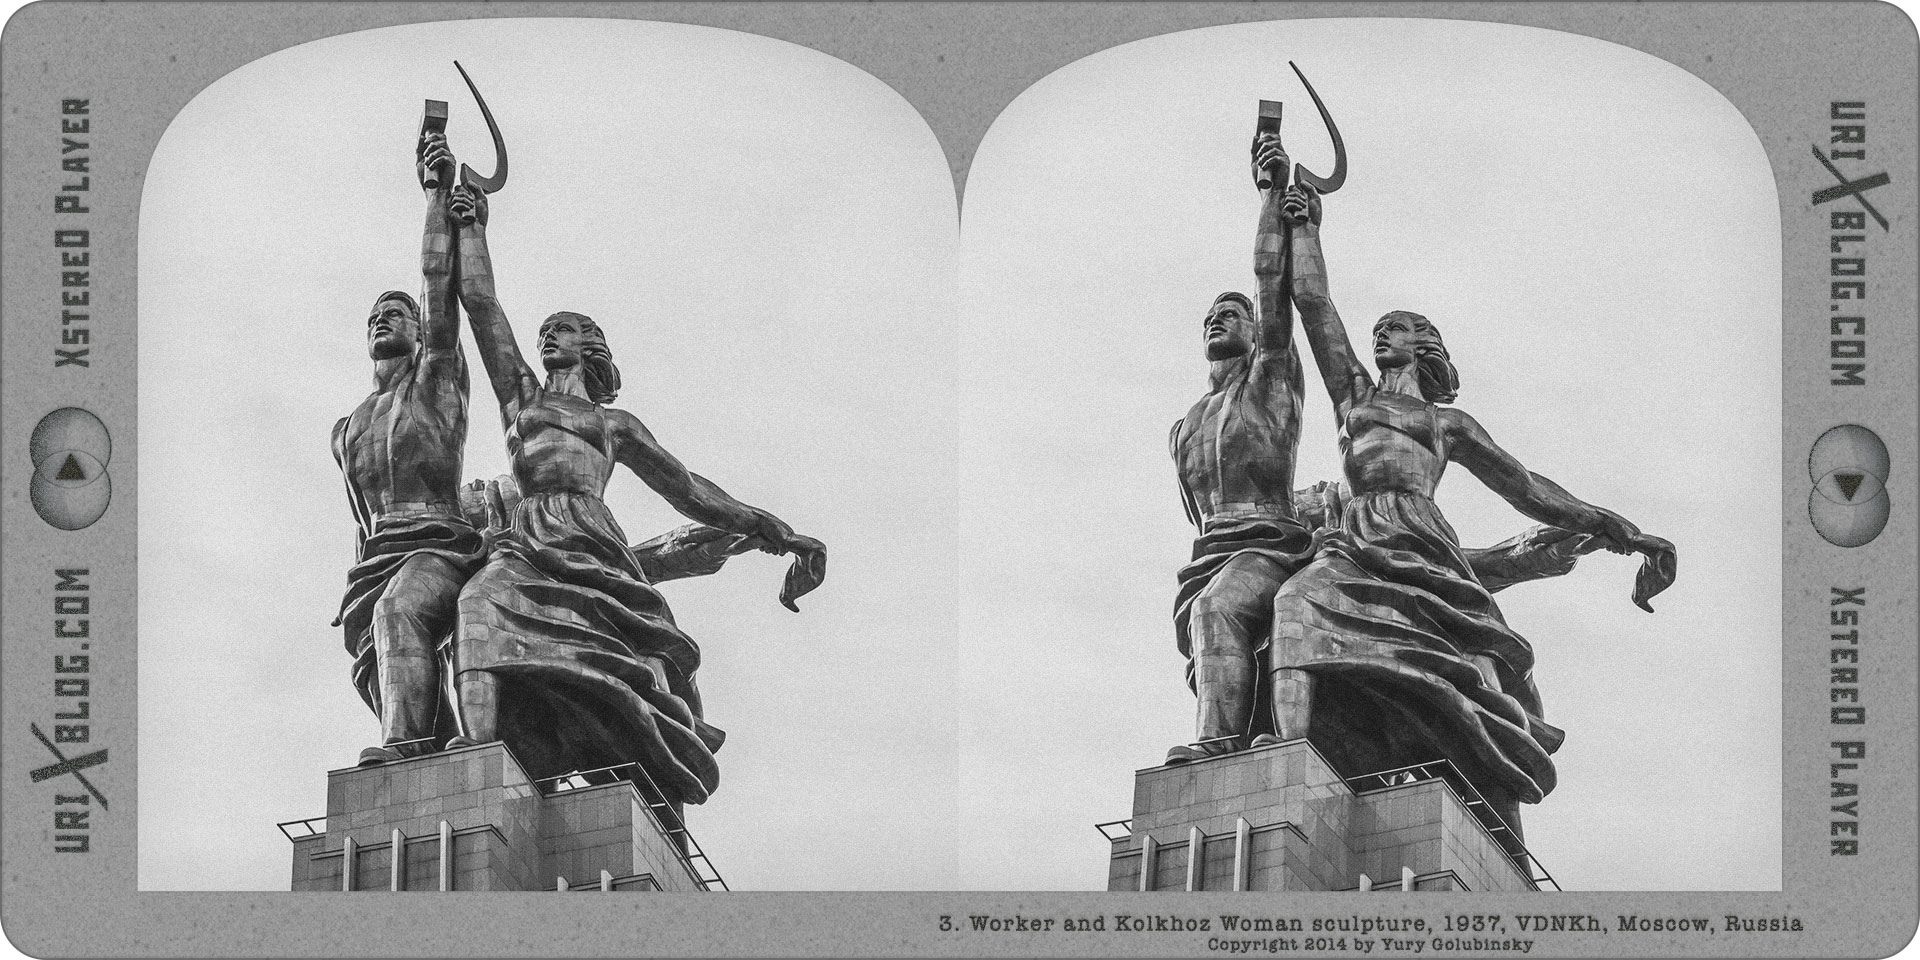 2014, Worker and Kolkhoz Woman, sculpture, statue, monument, museum, exhibition, VDNKh, Moscow, USSR, Russia, Soviet, art, 1937, Paris